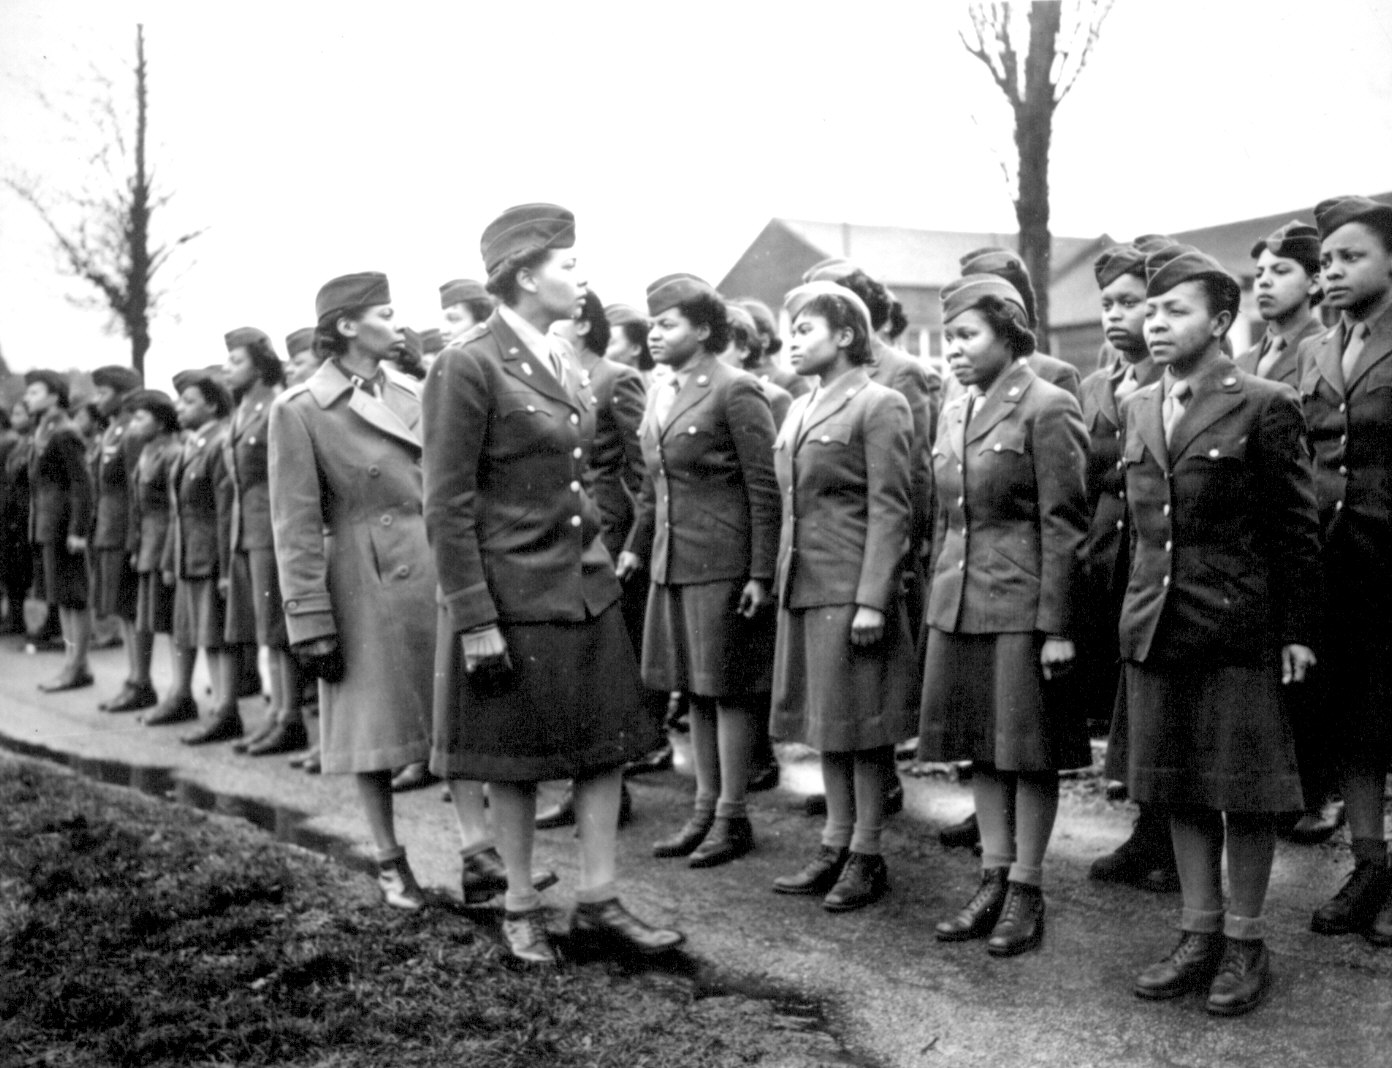 A unit of African American women are being inspected by instructors during World War Two